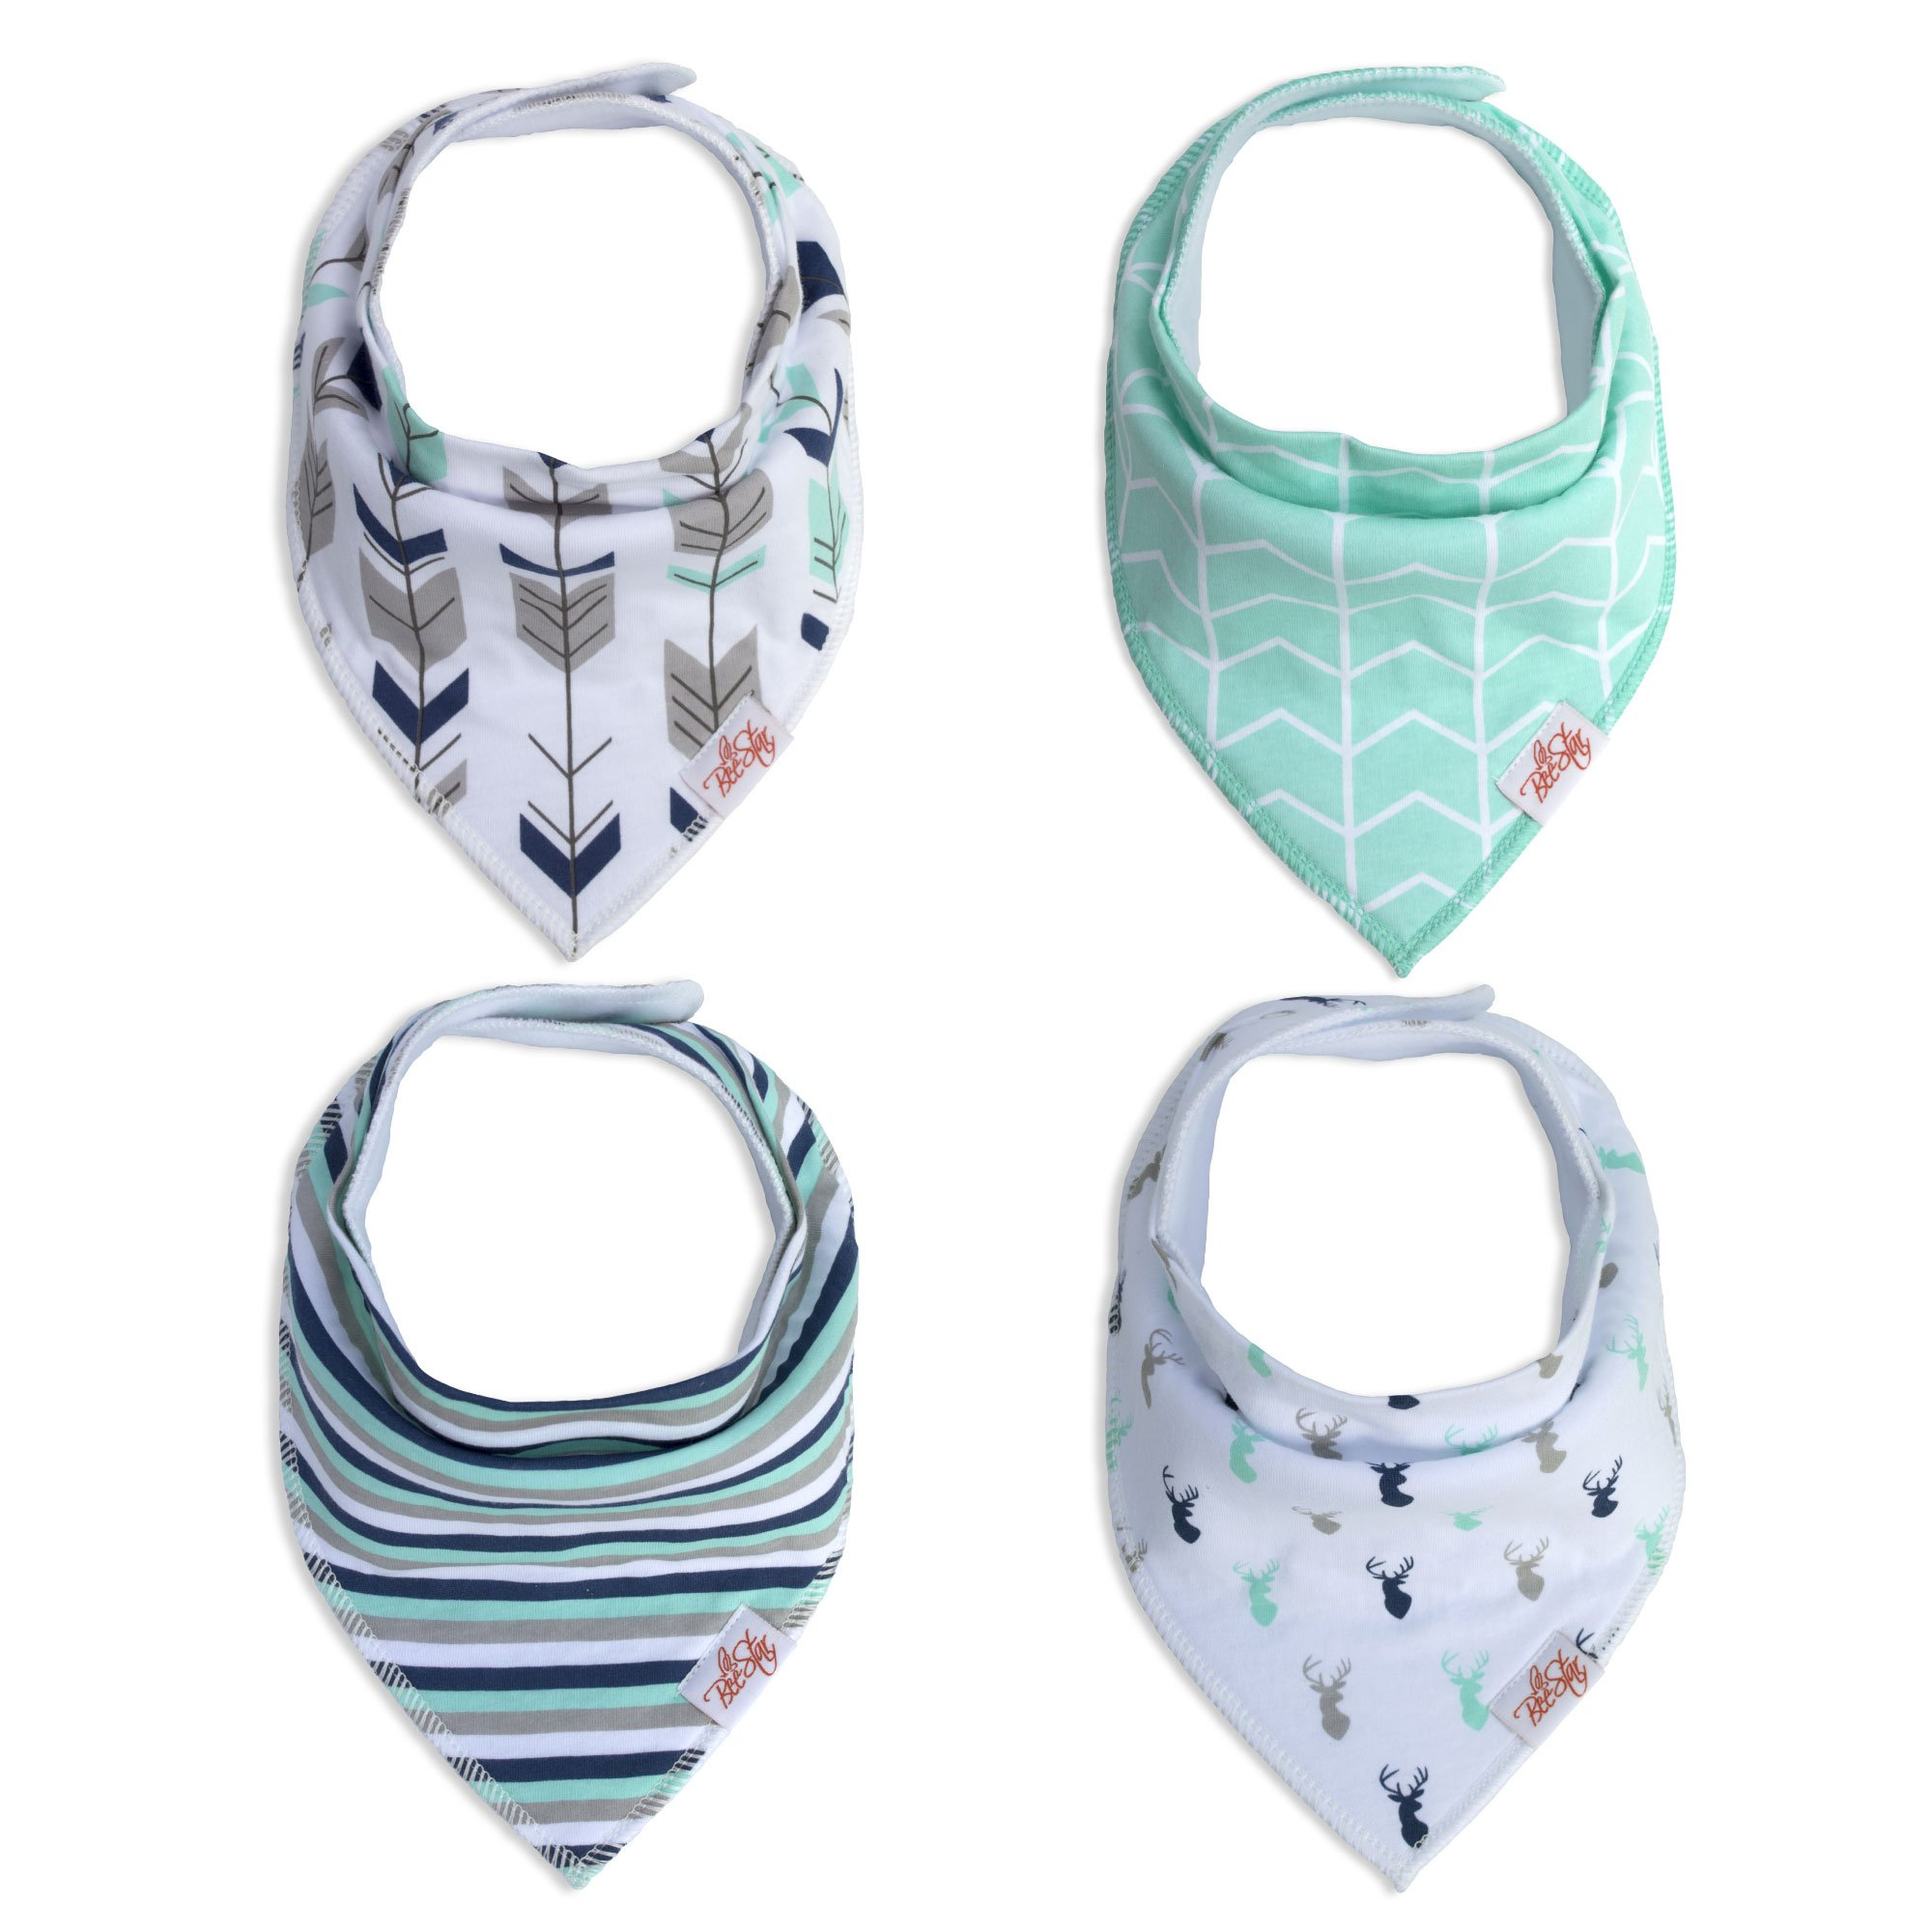 Baby Bandana Drool Bibs,4-Pack, for Boys and Girls Super Absorbent and Soft 100% Organic Cotton, Drooling Teething Baby Shower Gift Set BeeStar